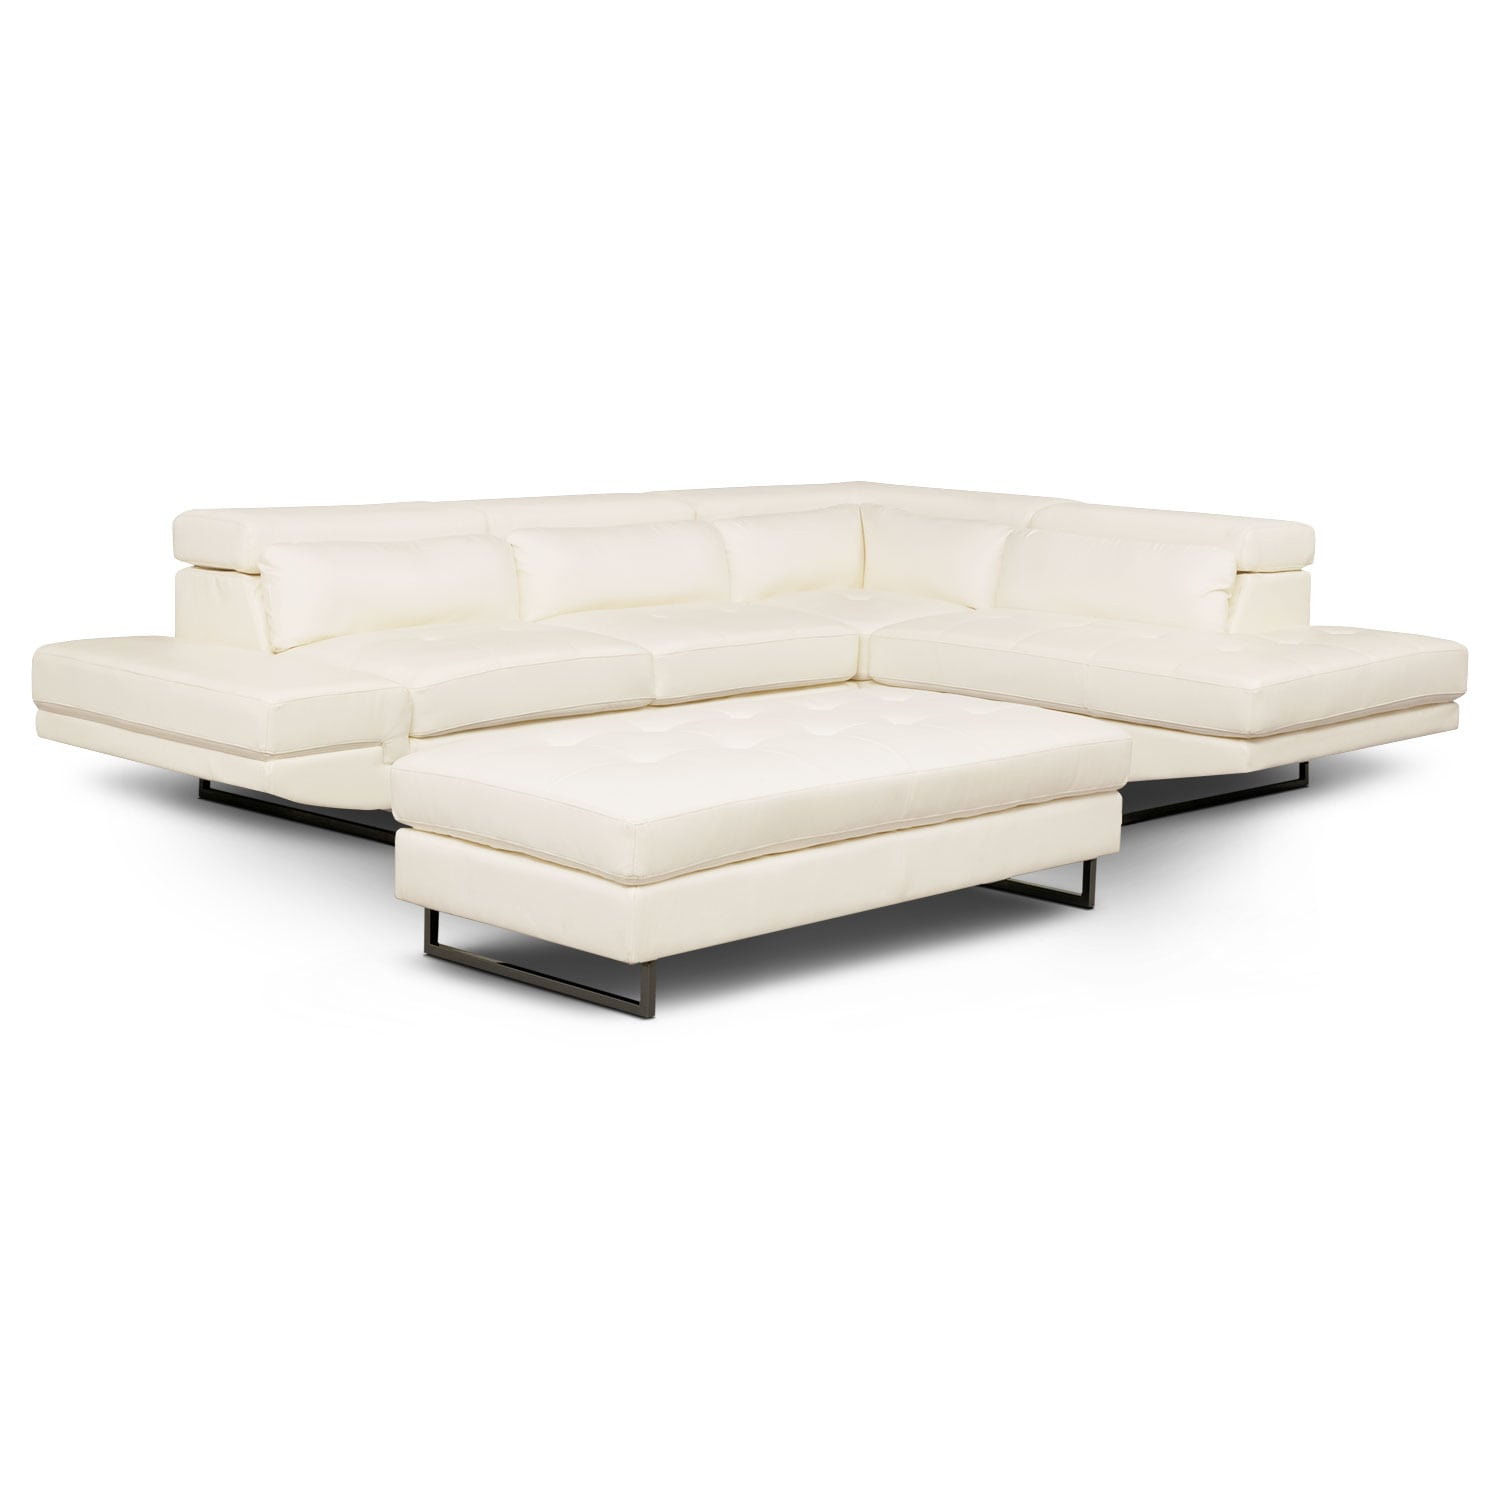 Torino 2-Piece Sectional with Right-Facing Chaise and Cocktail Ottoman - White